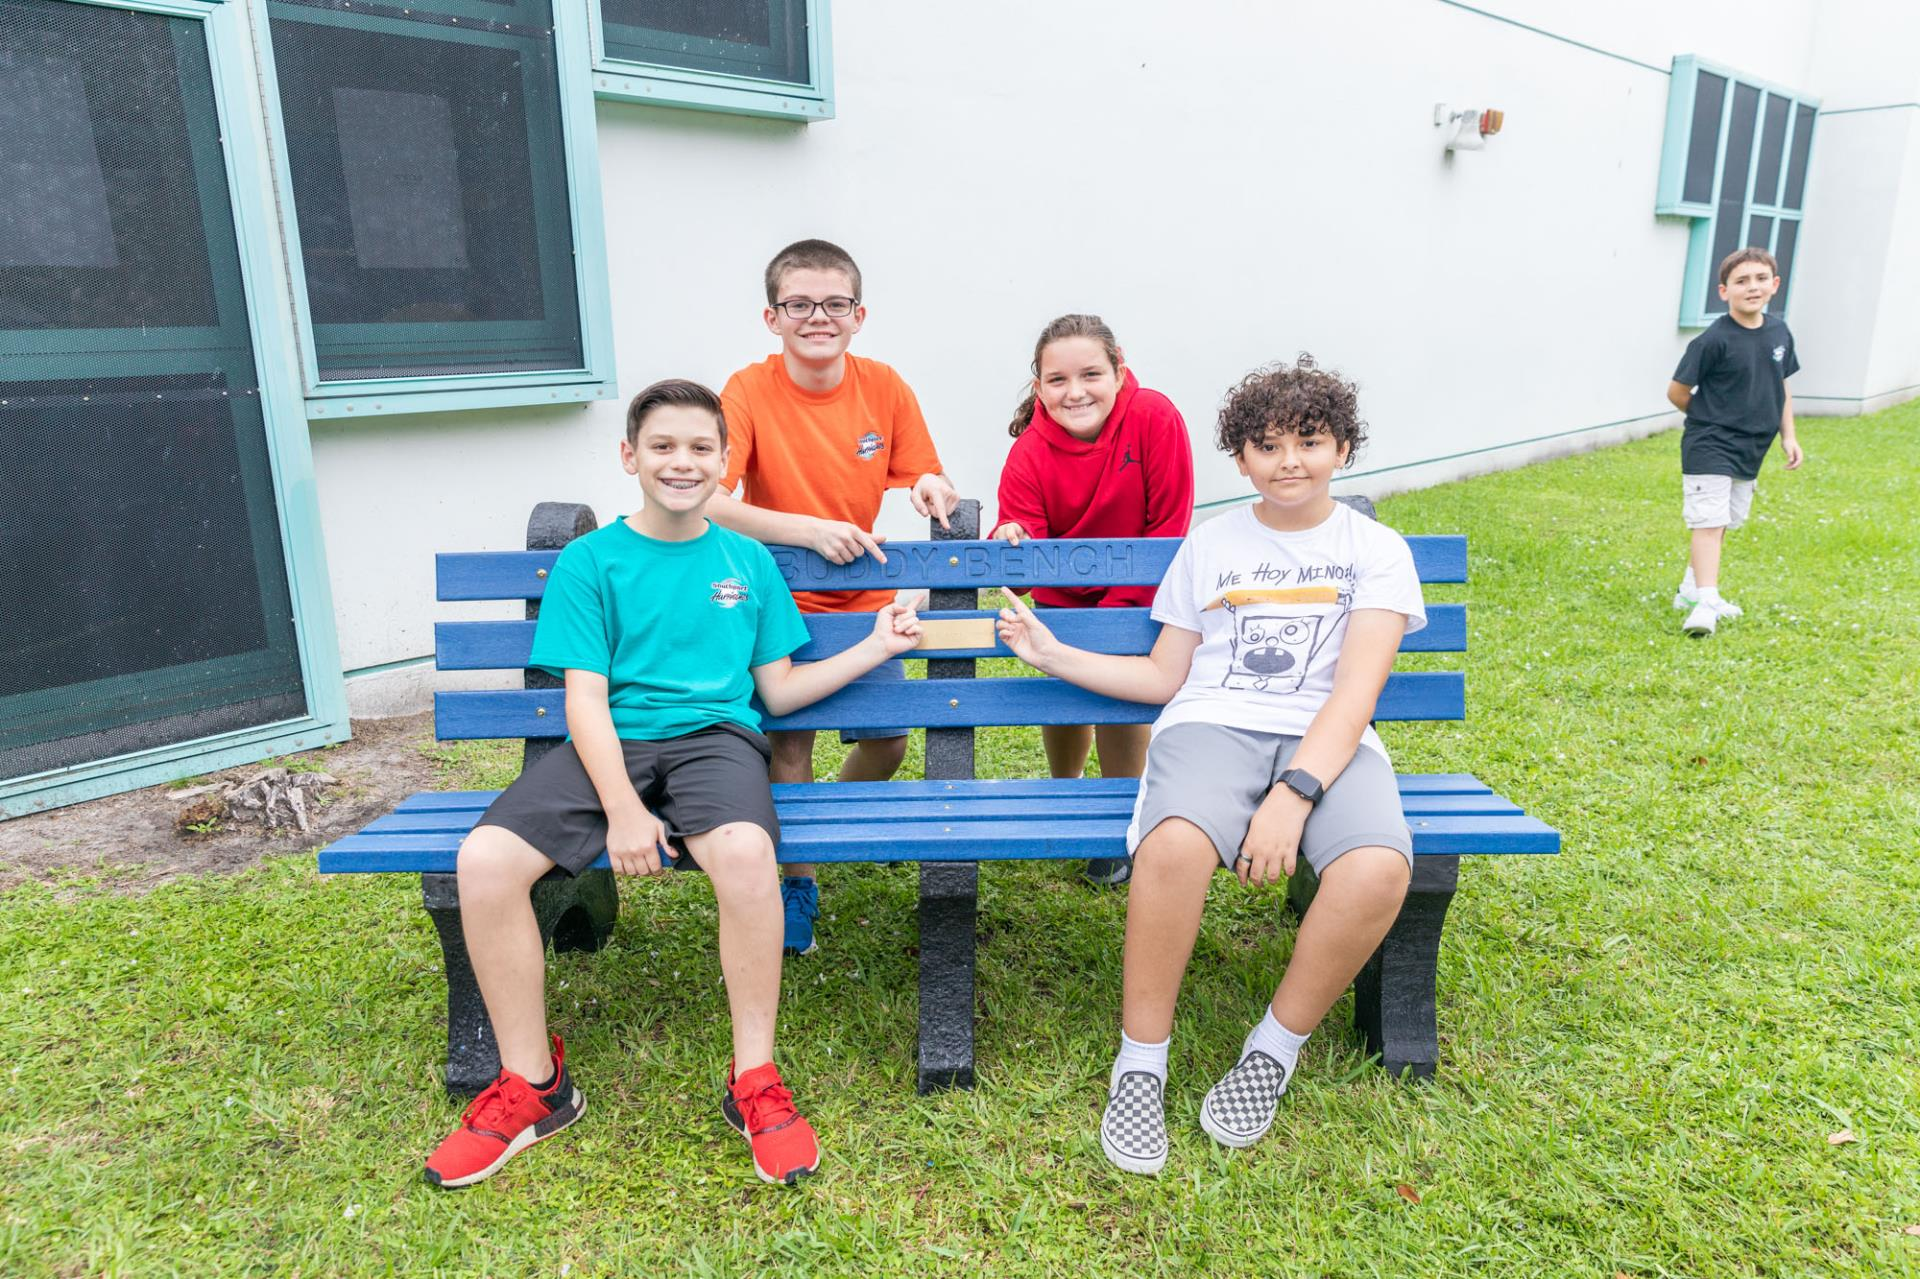 students smiling and sitting on bench